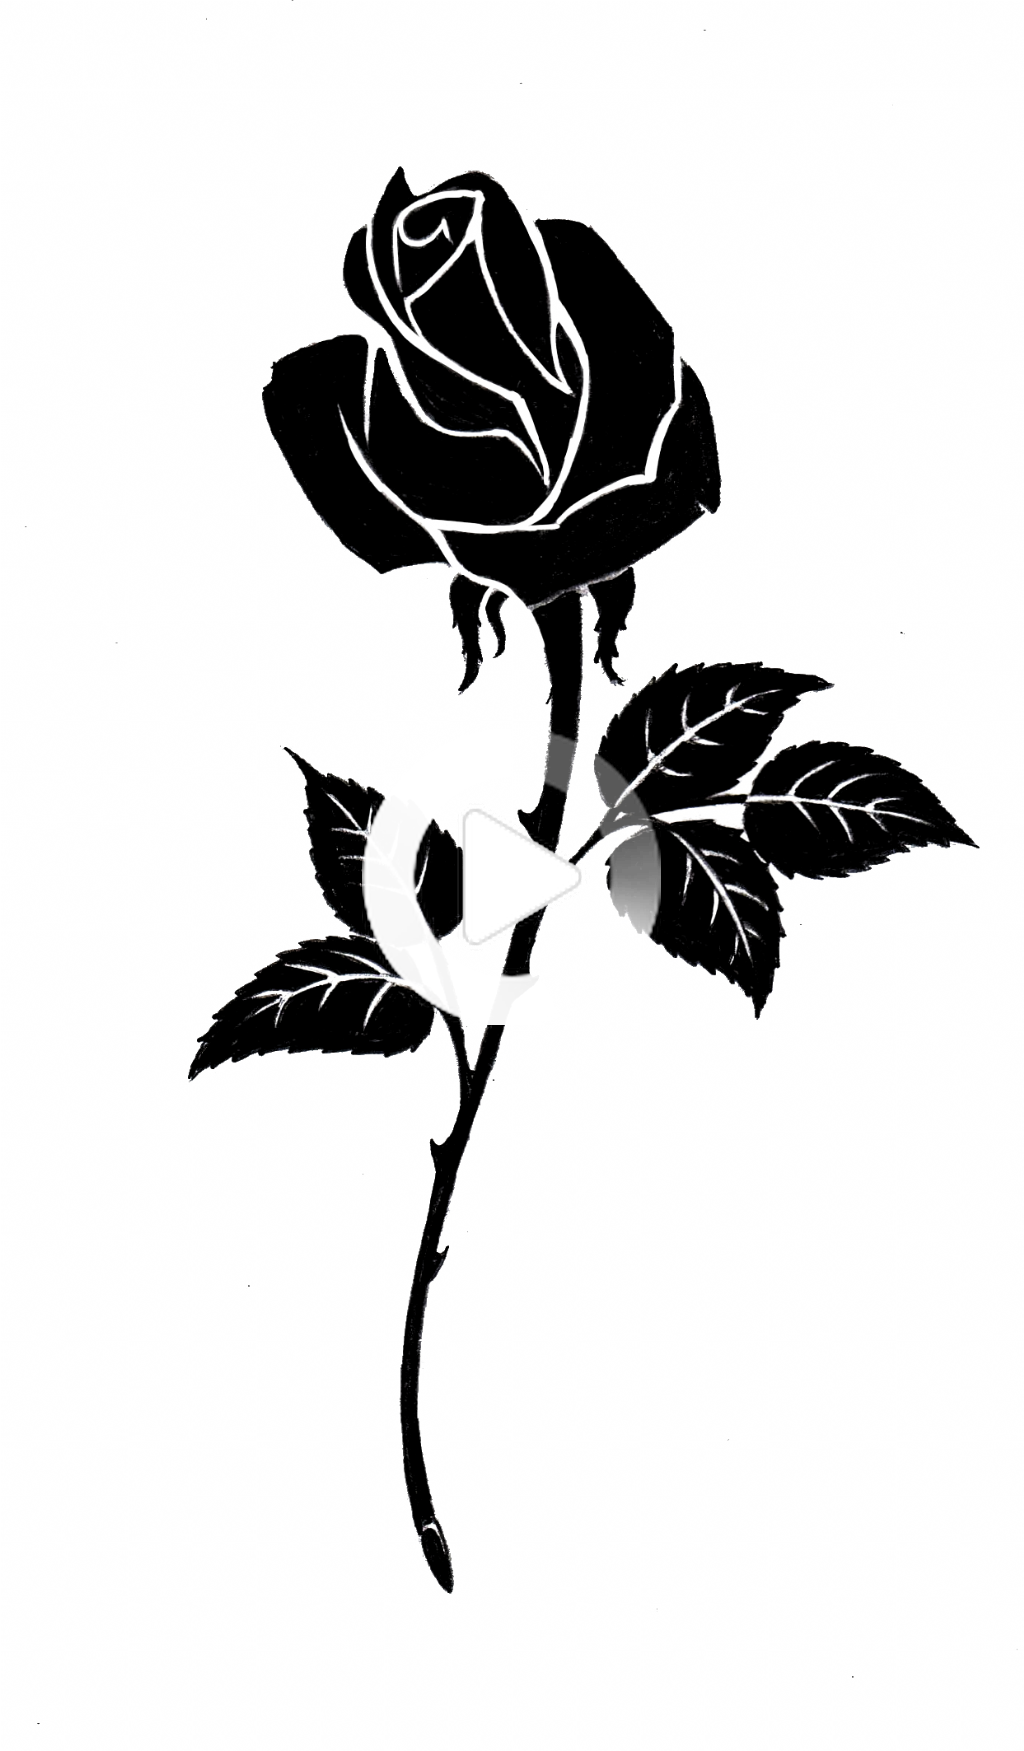 Gothic Tattoos Png Transparent Images Png All Black Rose Tattoos Rose Tattoos Tattoos For Women Flowers